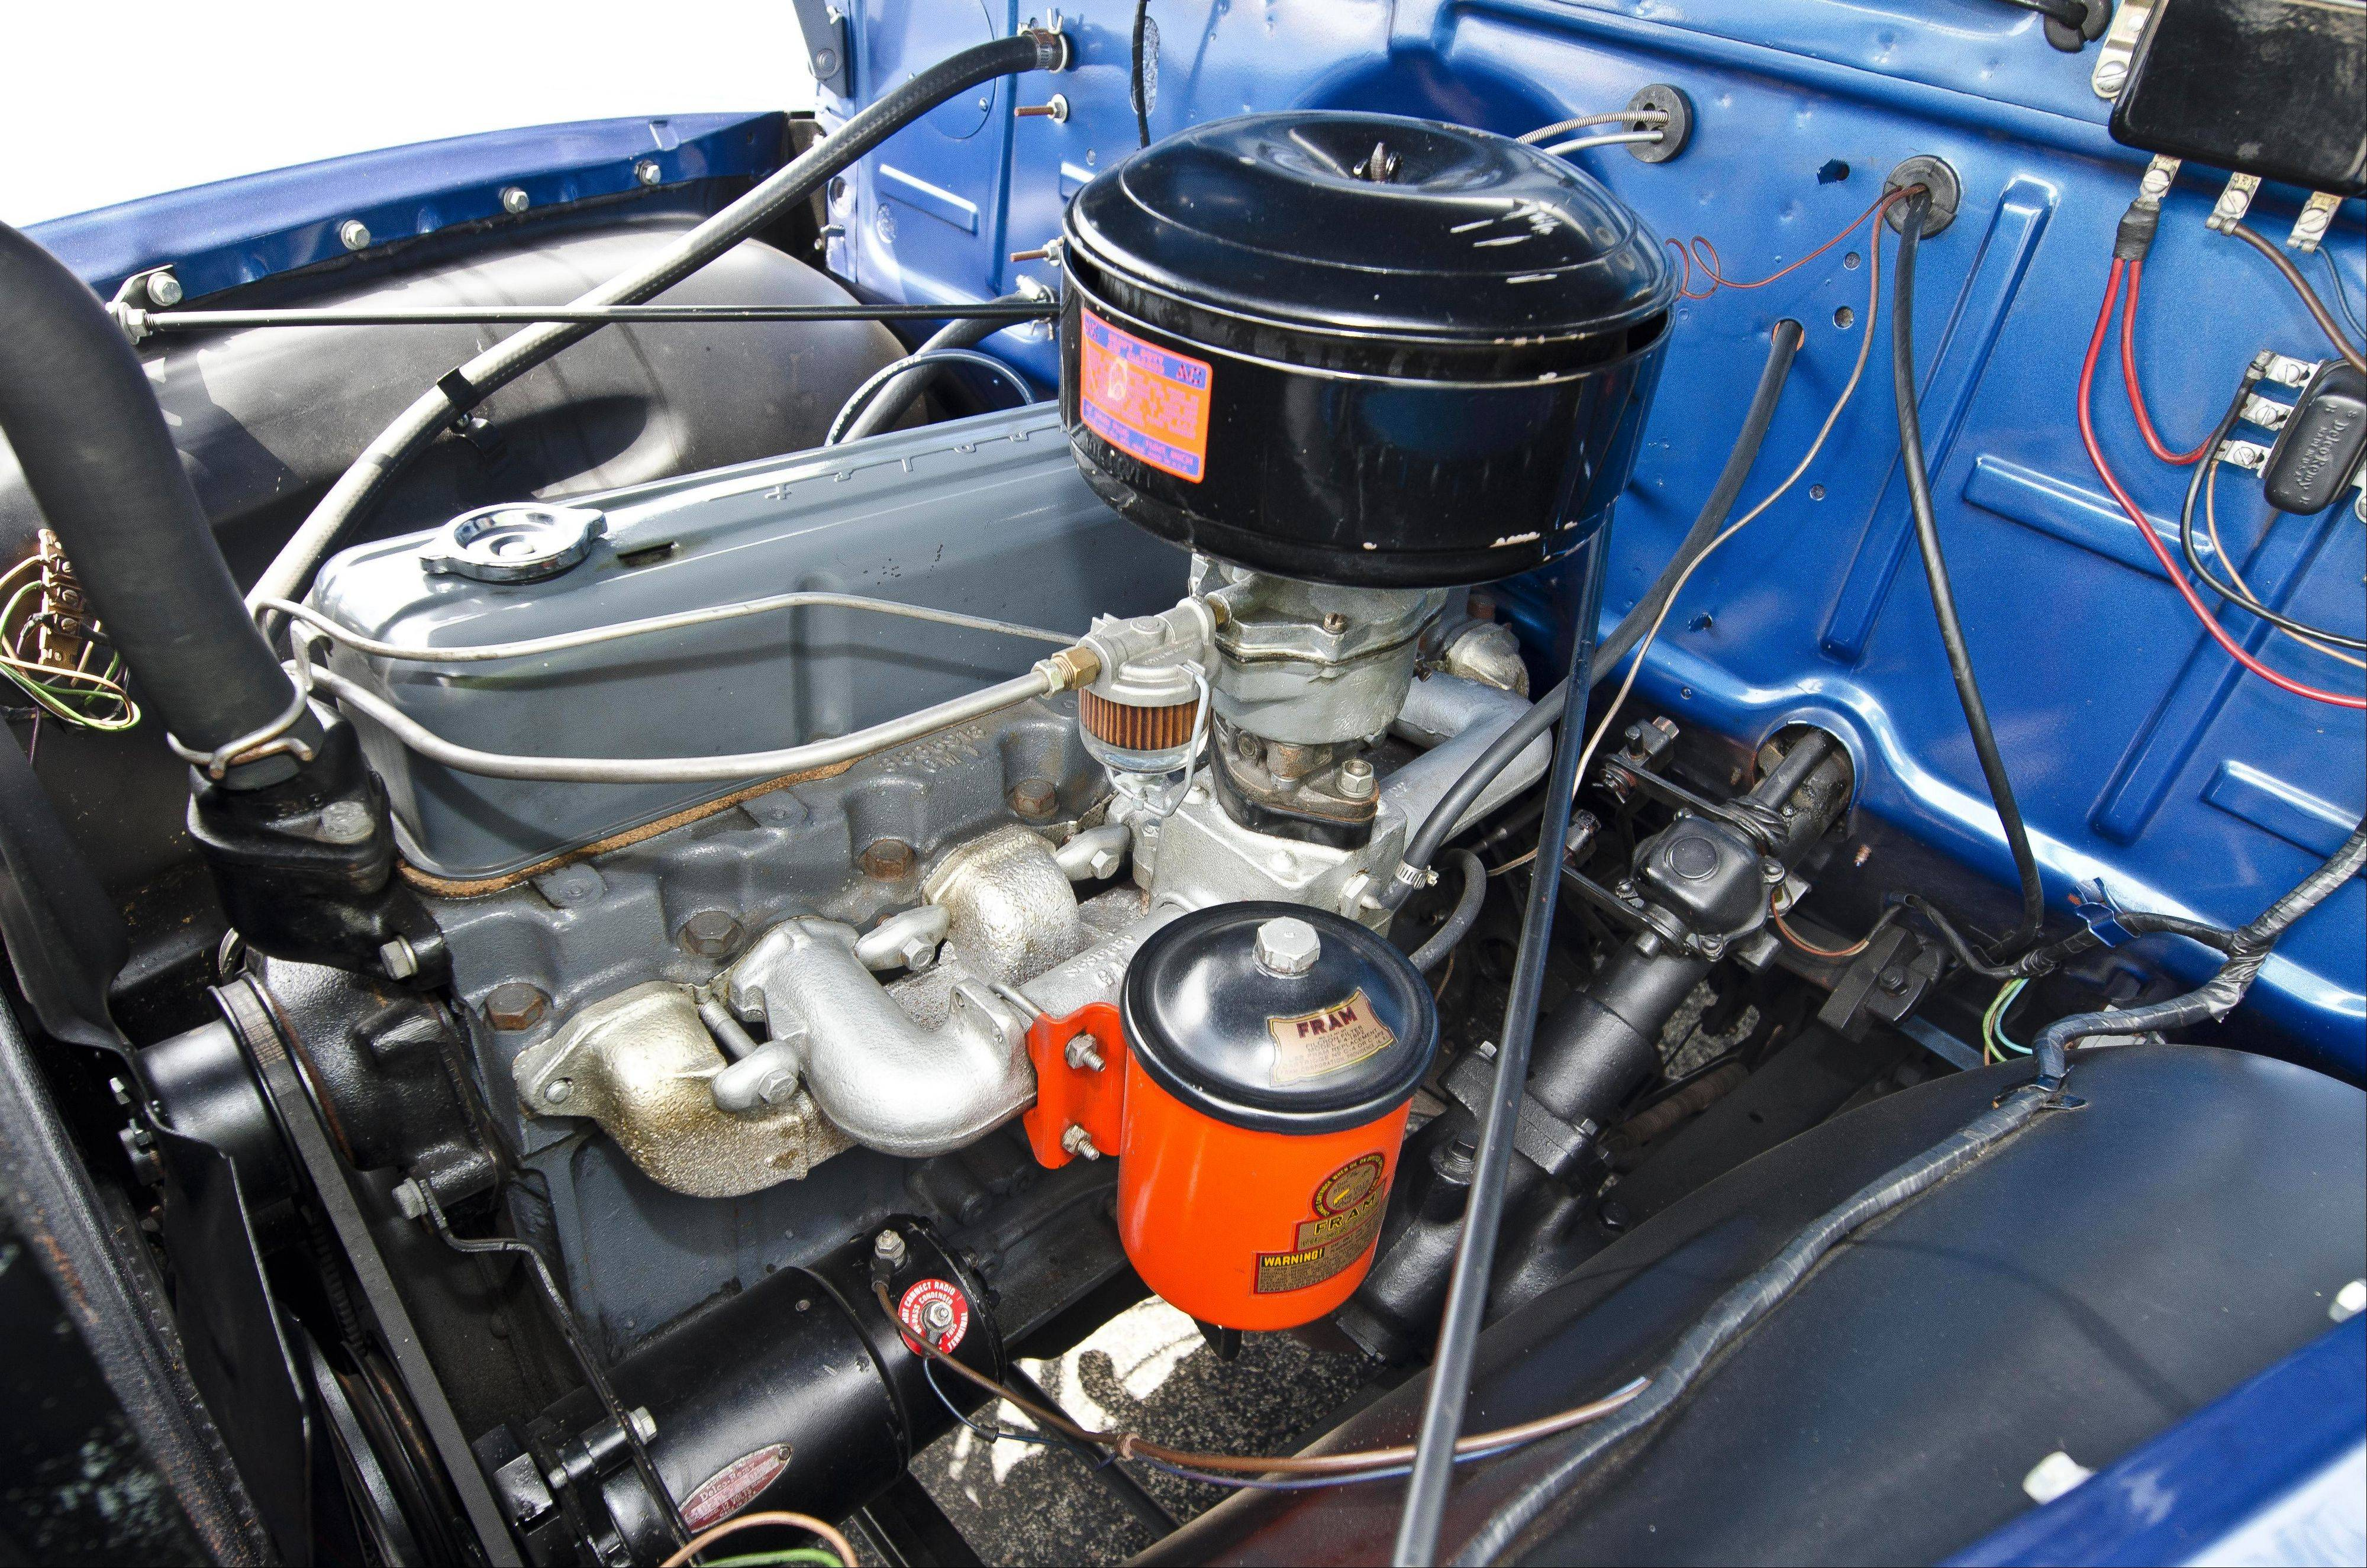 The pickup is powered by a factory Thriftmaster 235-cubic-inch six-cylinder engine.